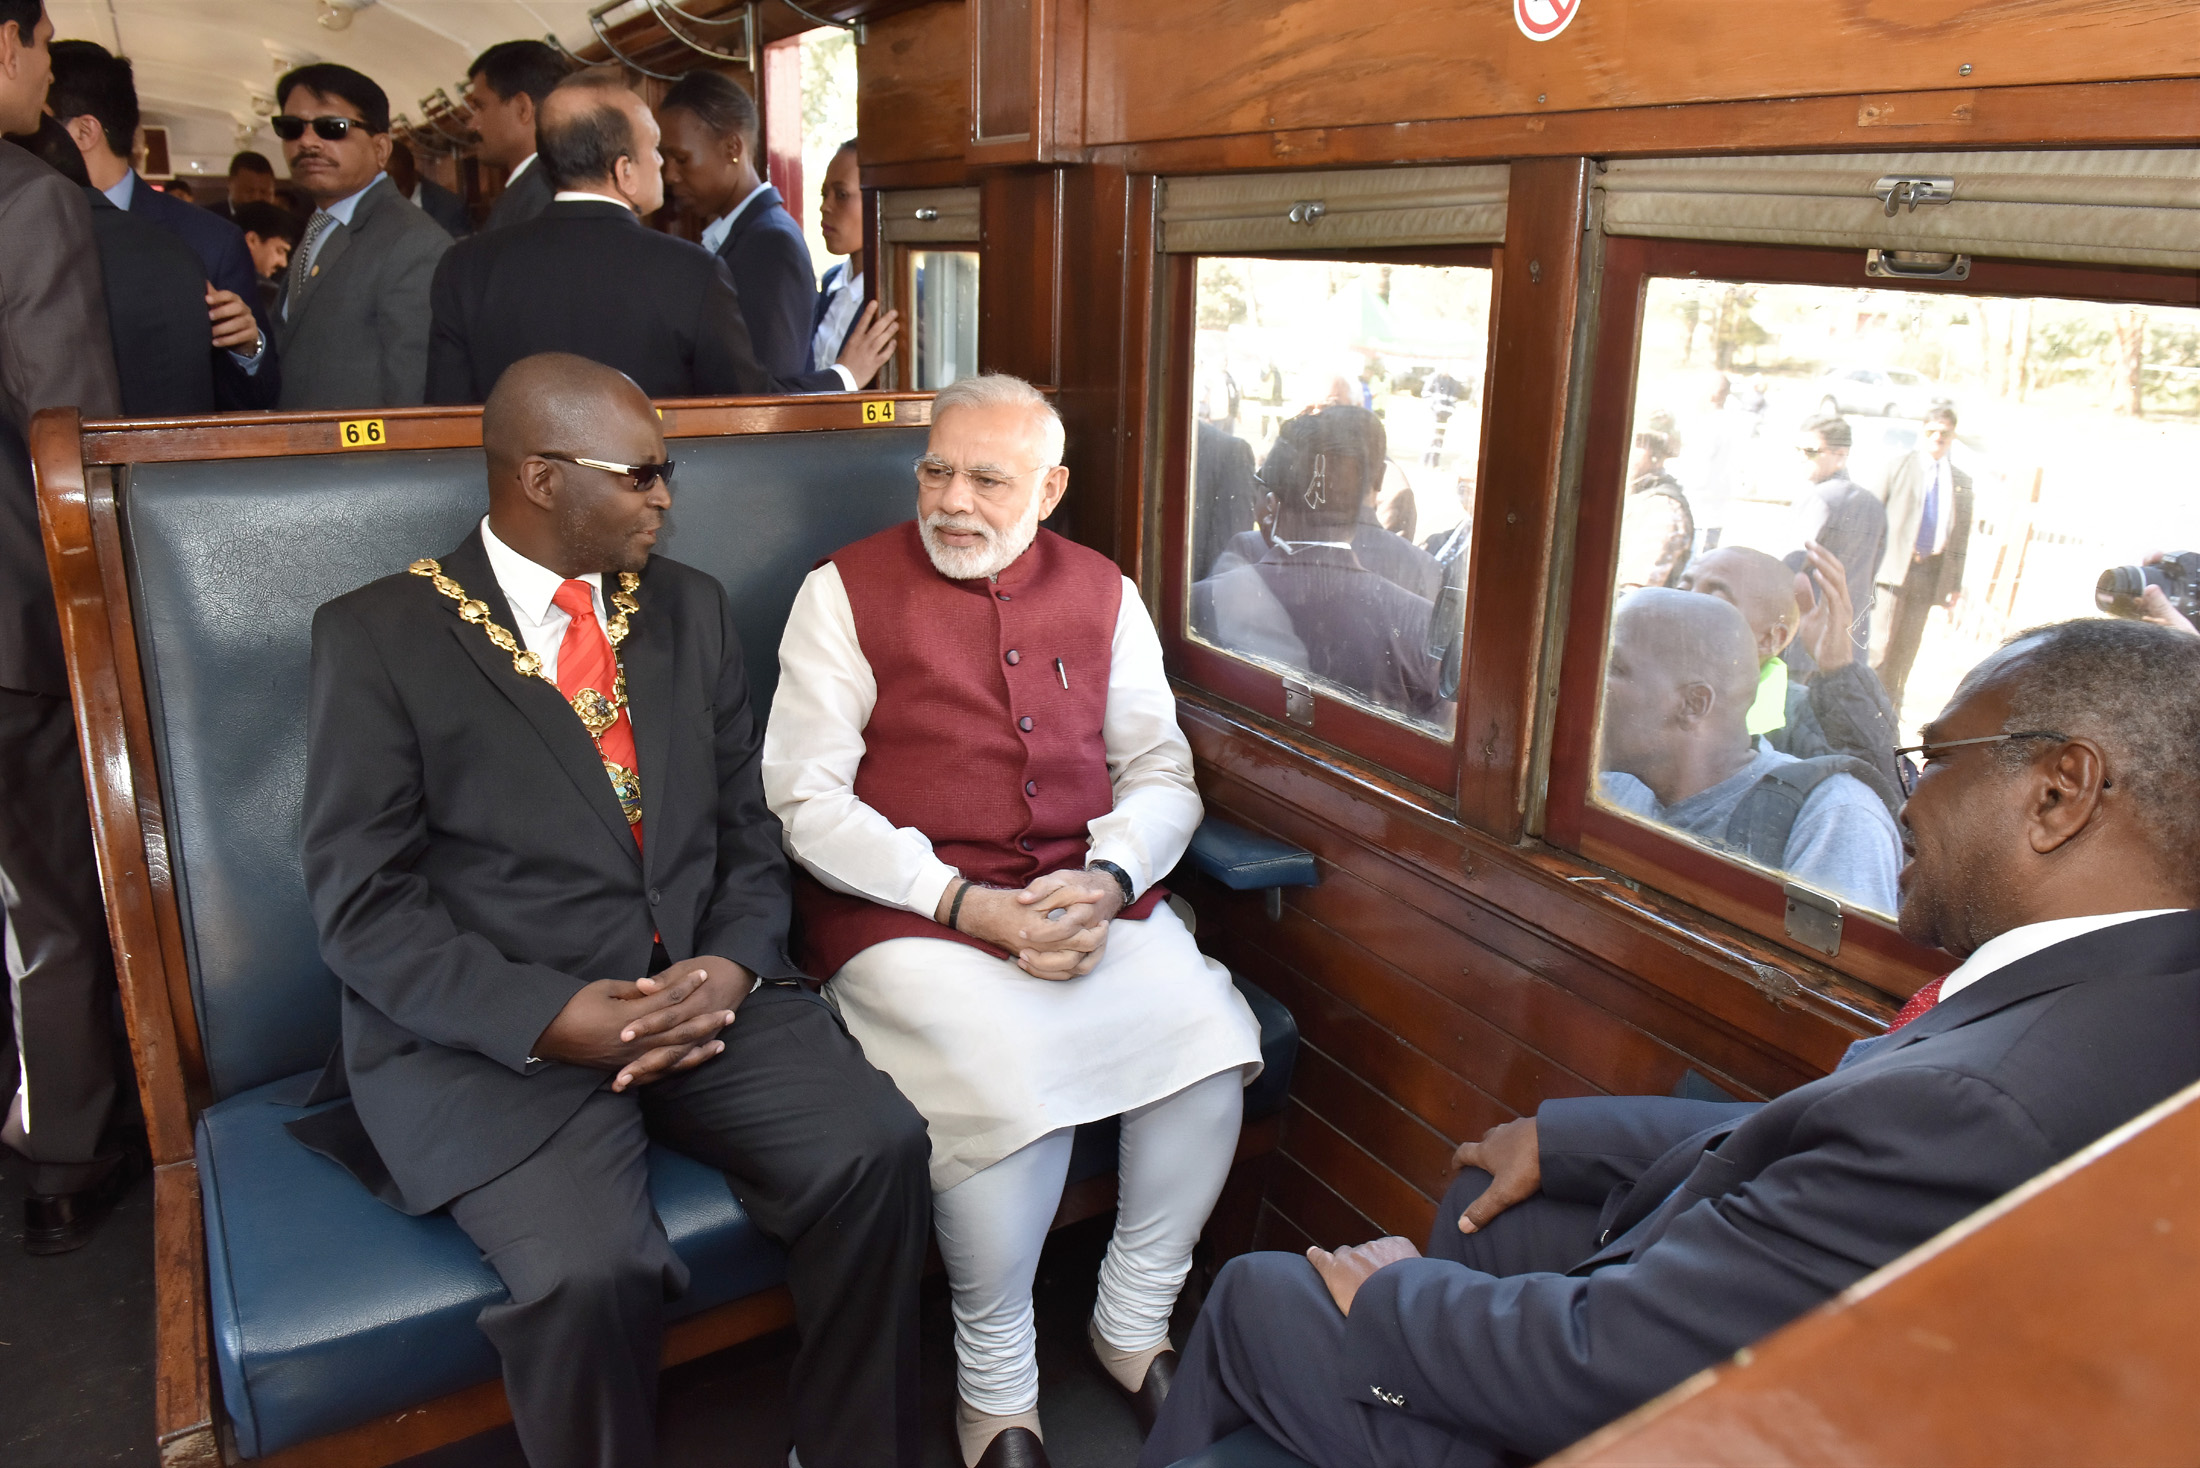 PM Modi in Gandhi Track of Railways - South Africa Train Tour